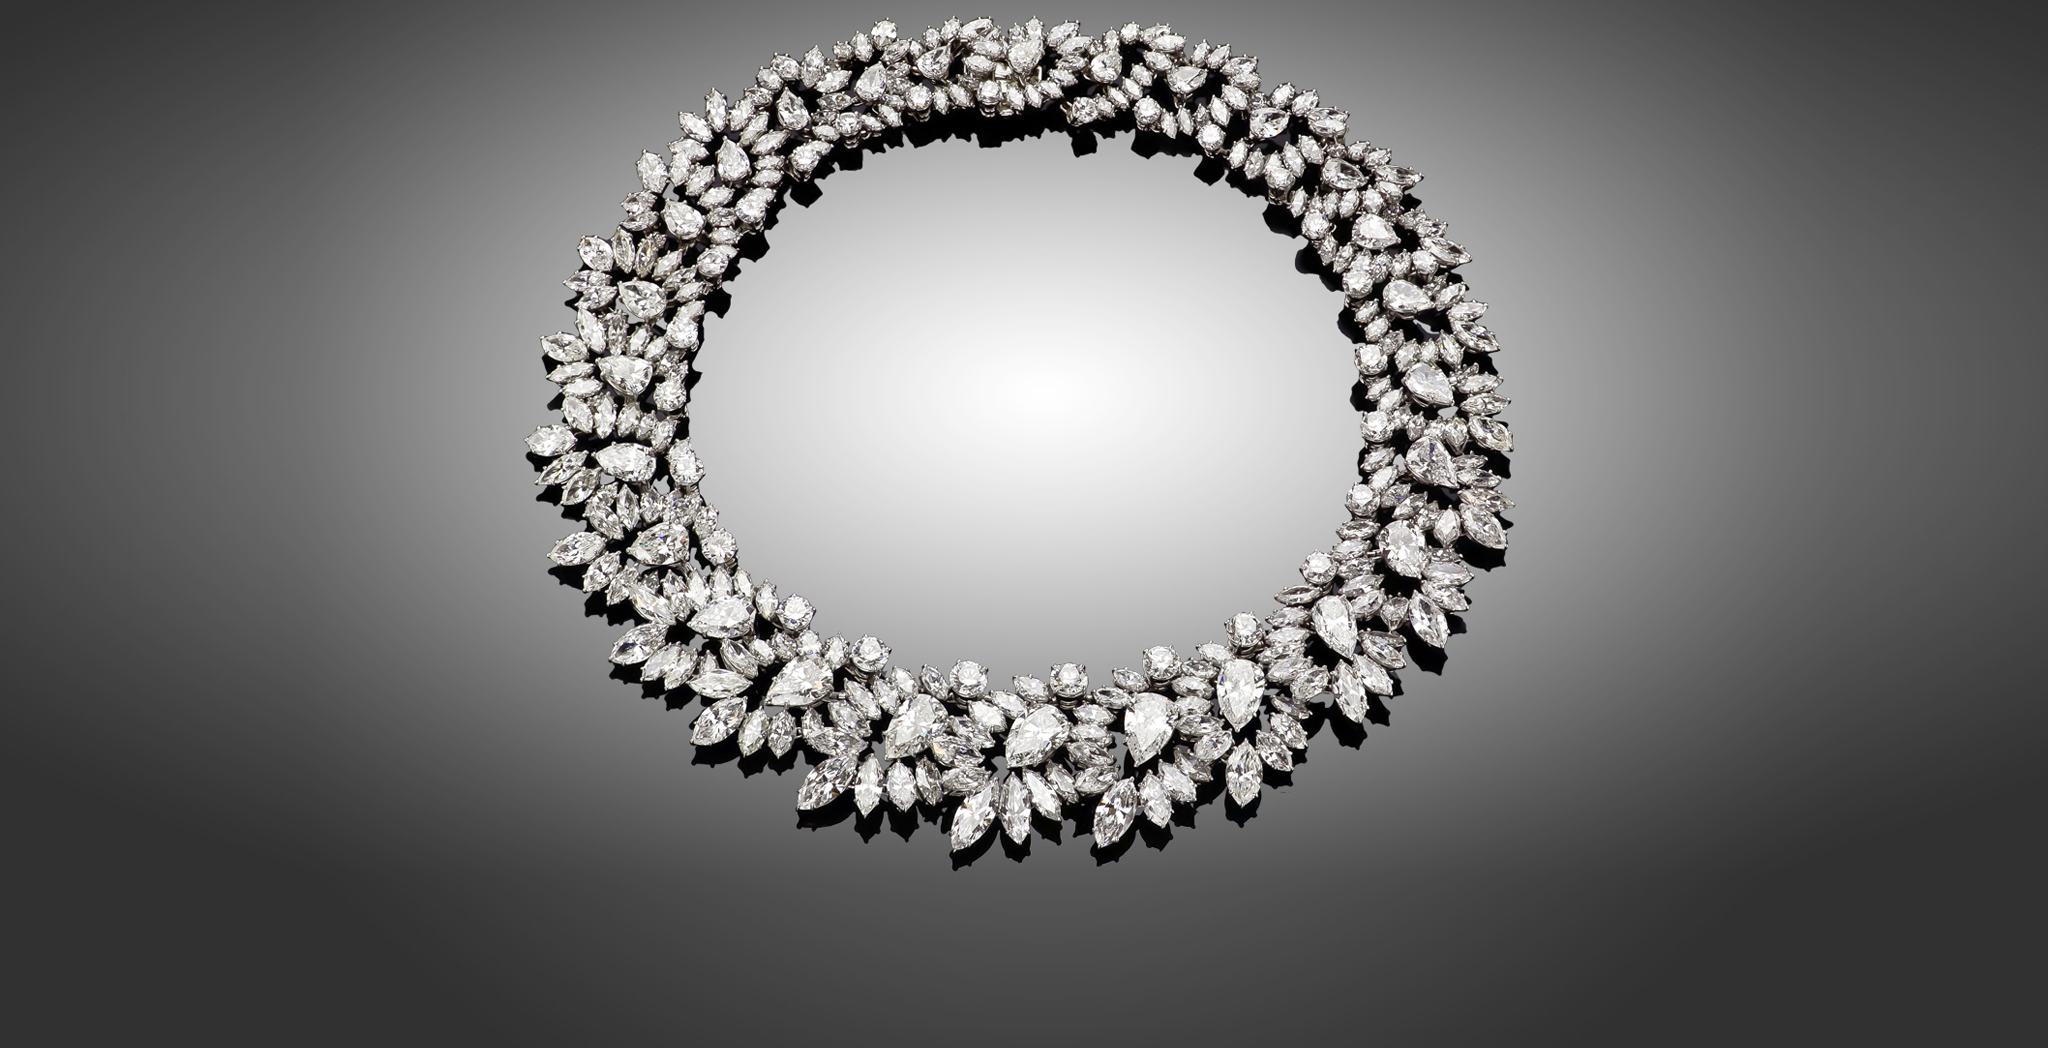 Exceptional Jewelry Photography